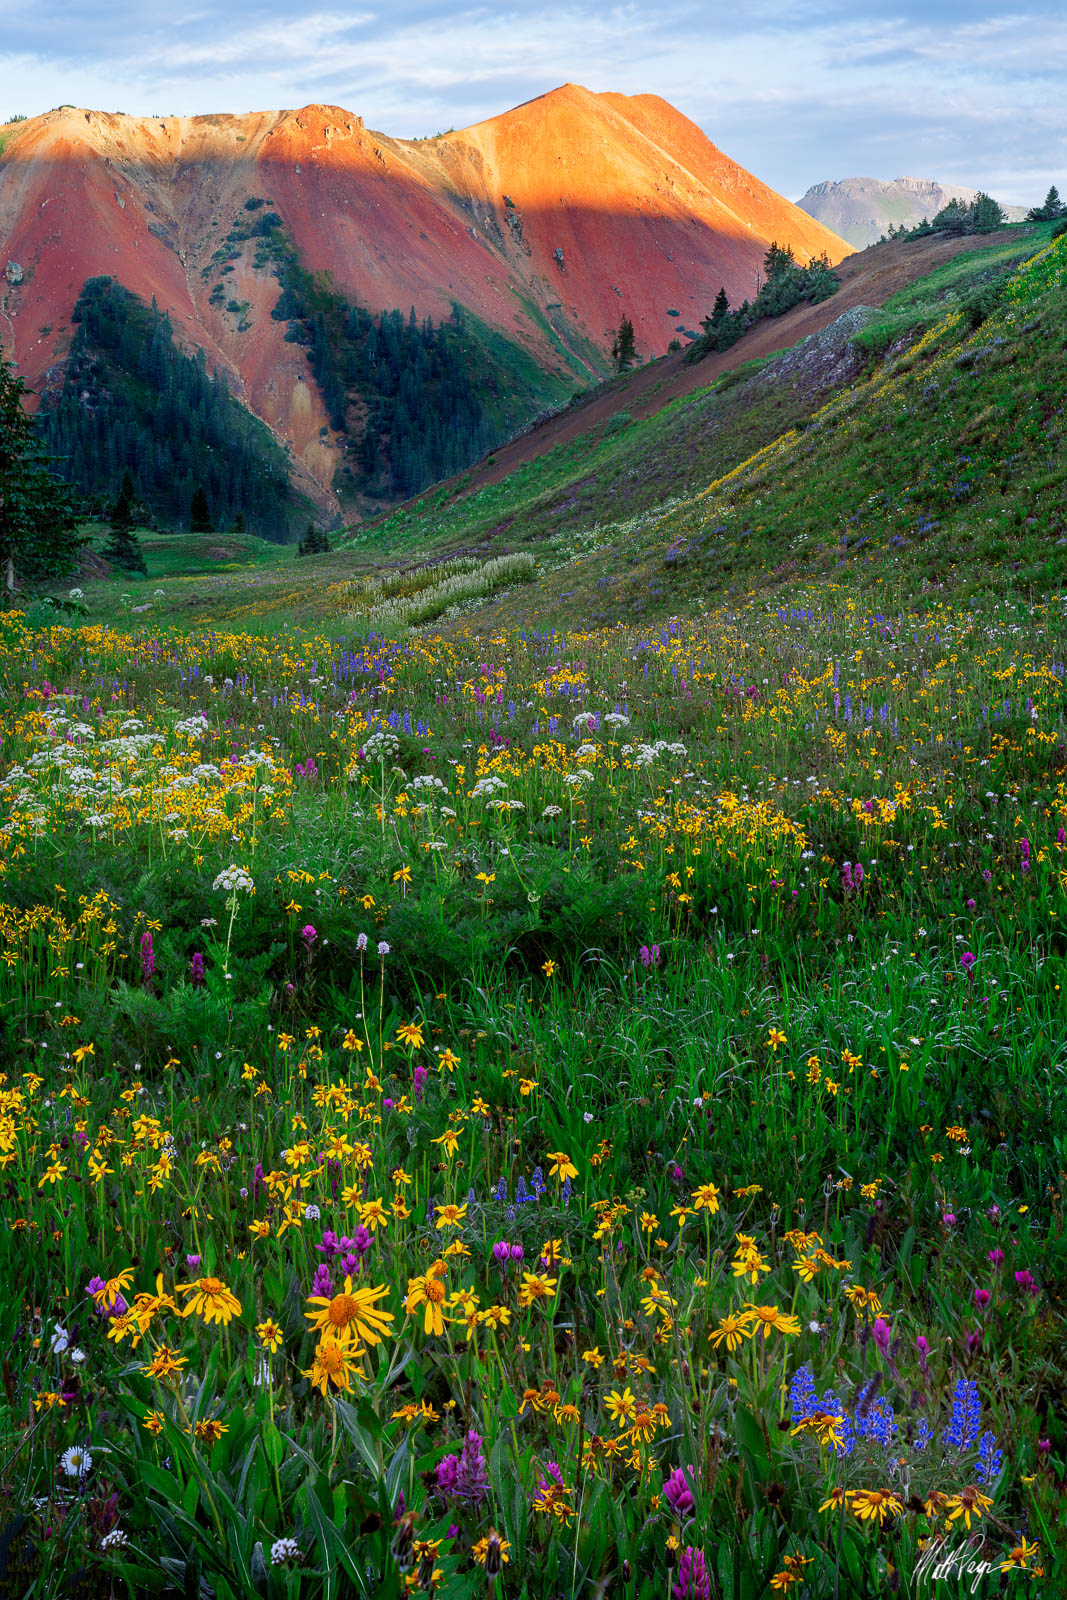 While hiking around one of my favorite areas in the San Juan Mountains of Colorado, I discovered this incredible meadow of wildflowers...